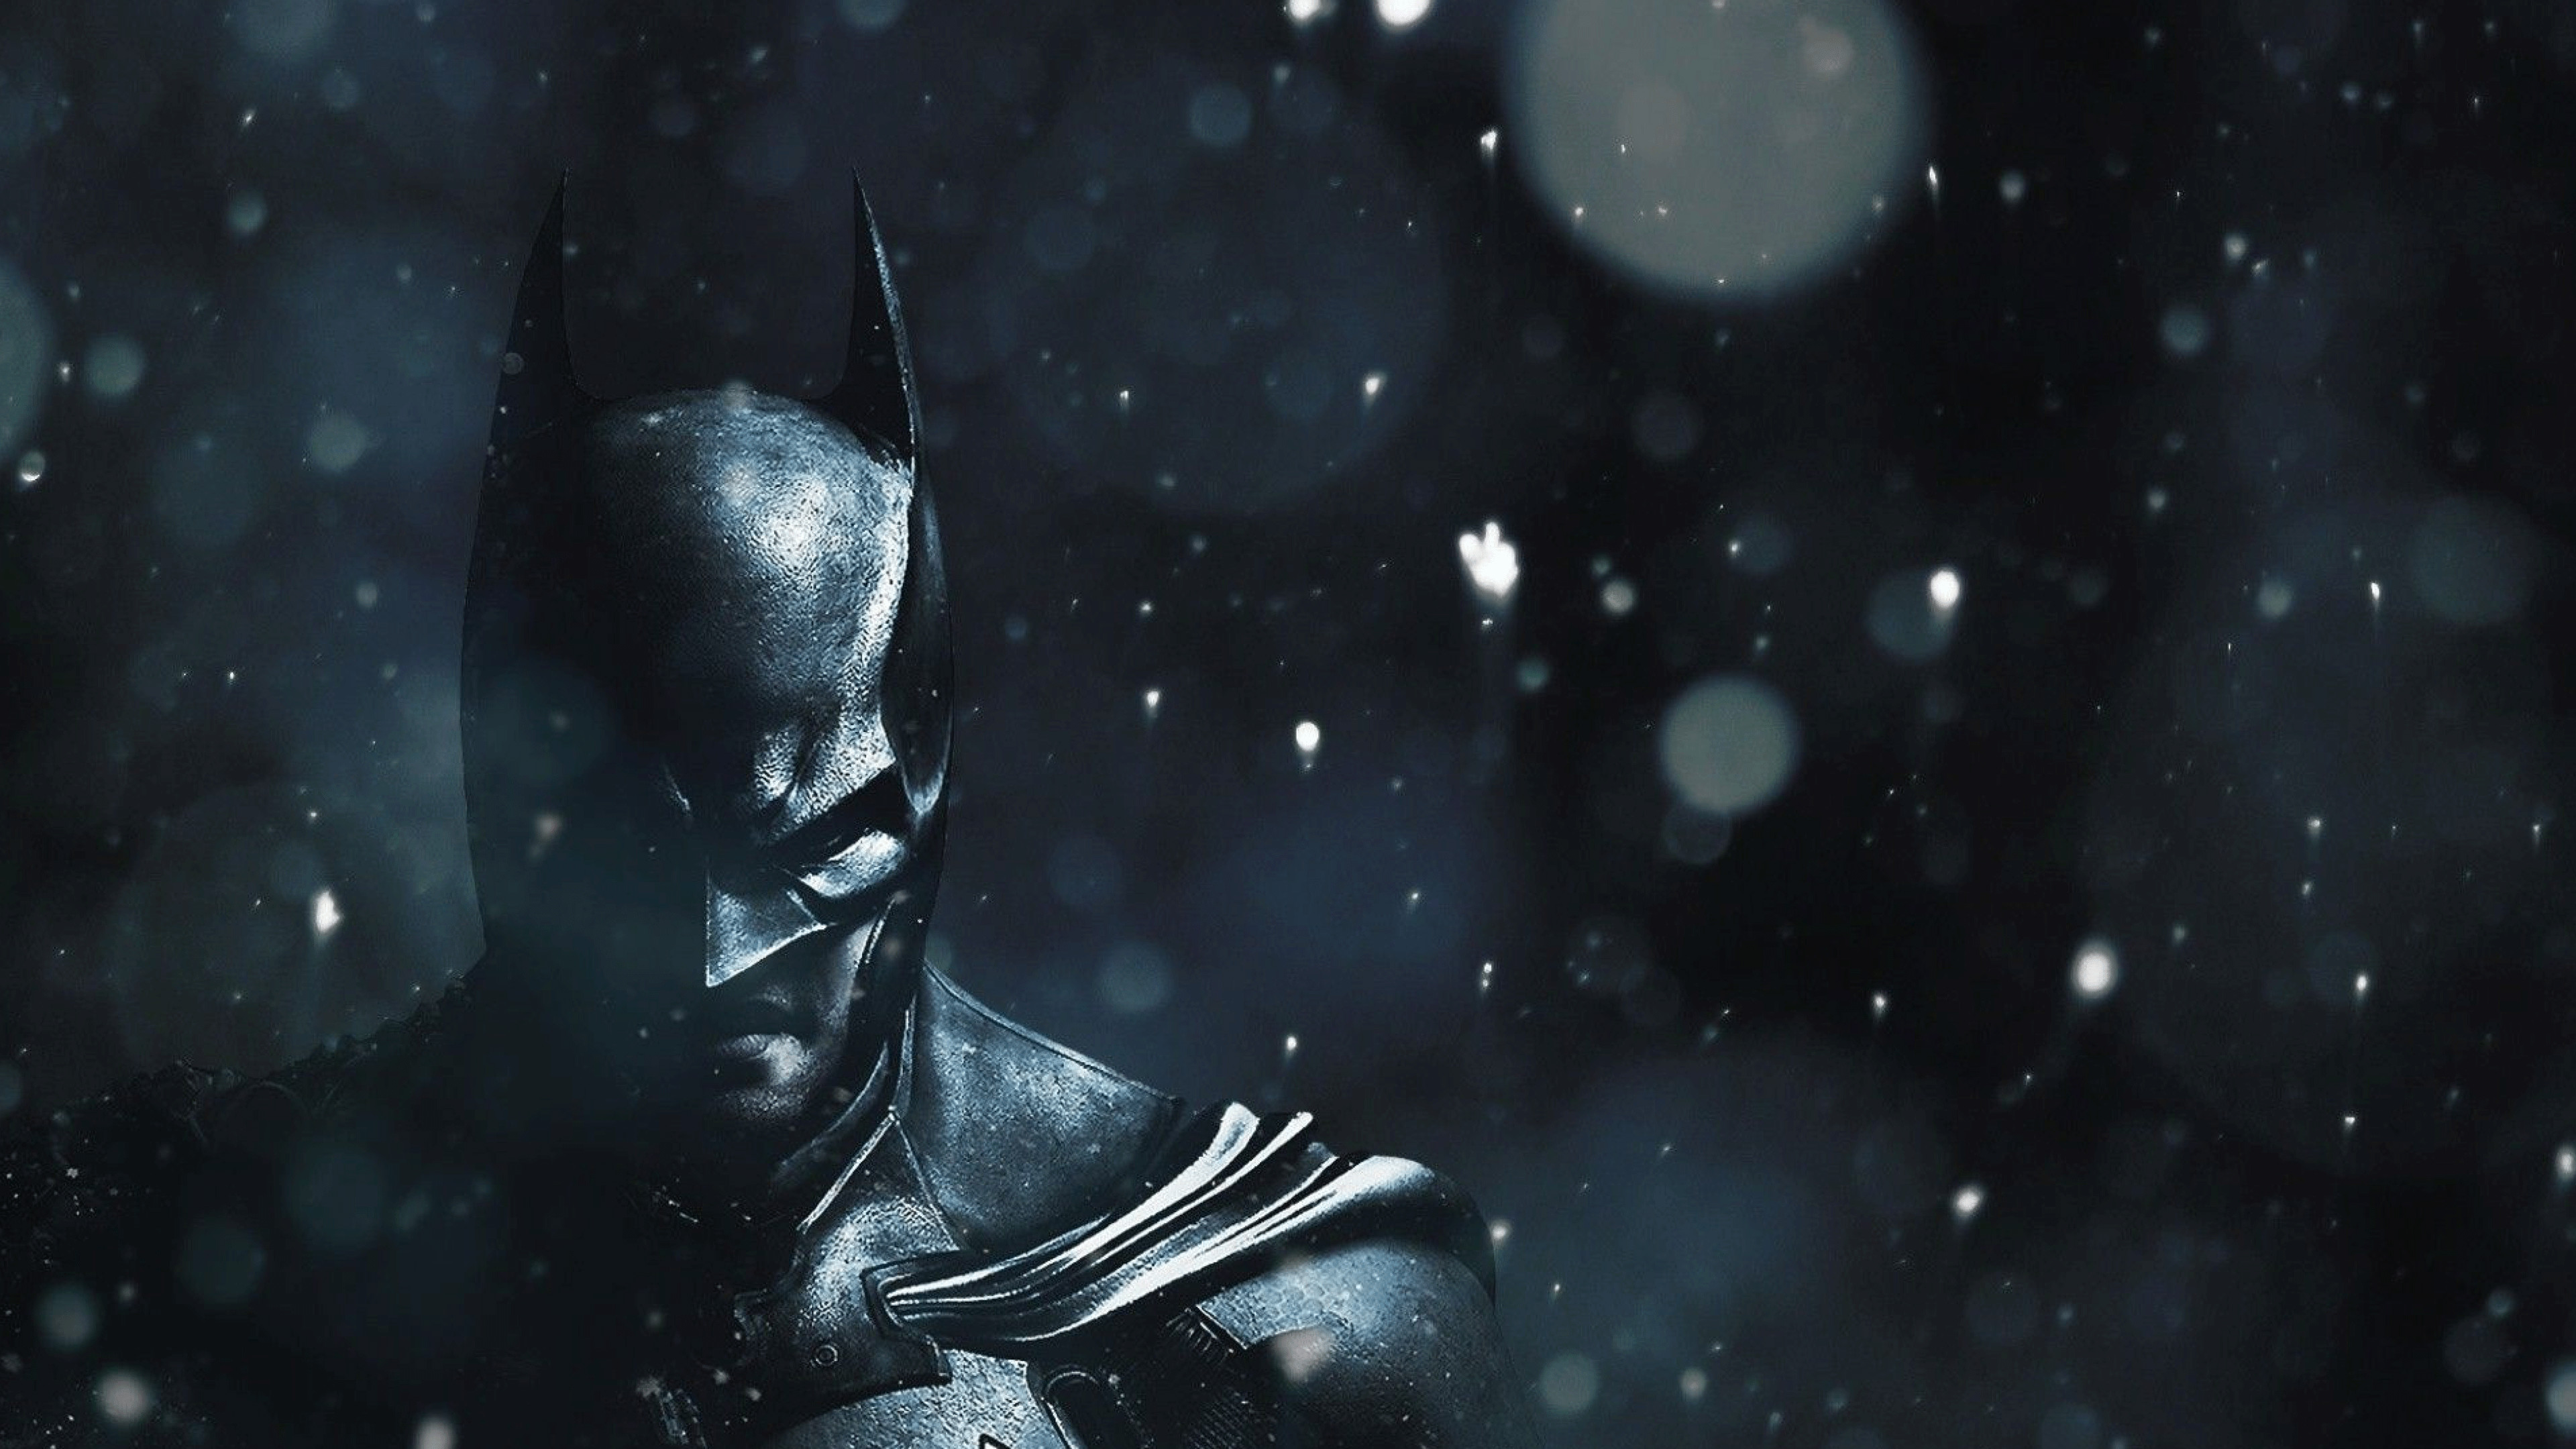 10 New Awesome 4k Gaming Wallpapers Full Hd 1080p For Pc: 4K Batman Wallpaper (48+ Images